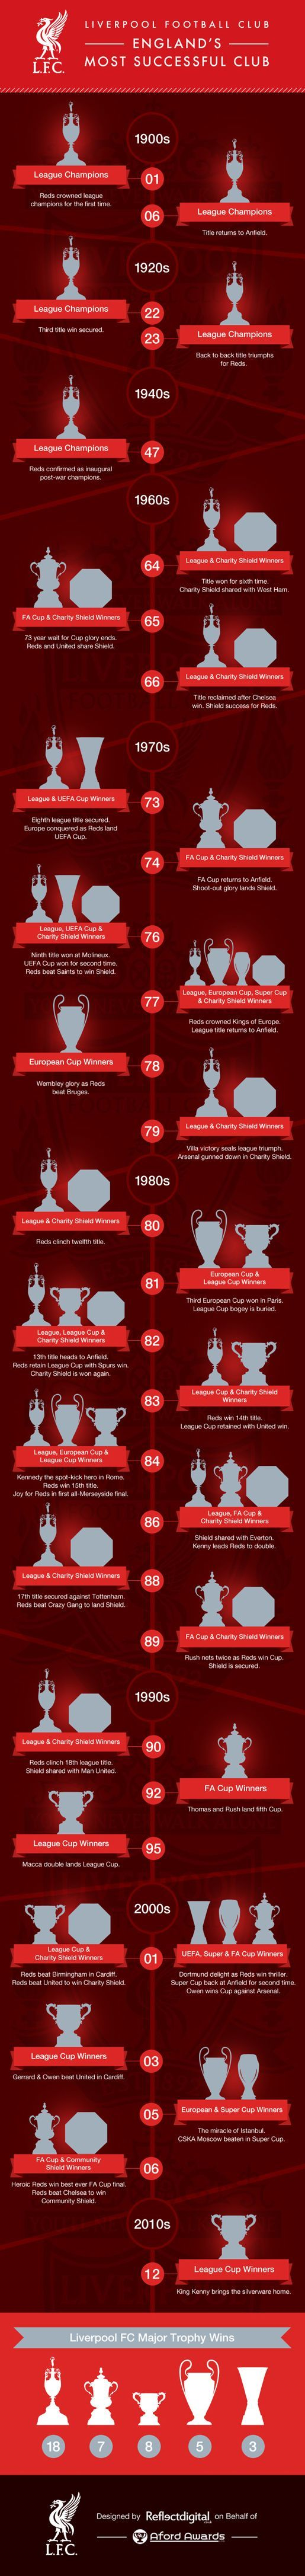 Infographic: England's greatest club - Liverpool FC